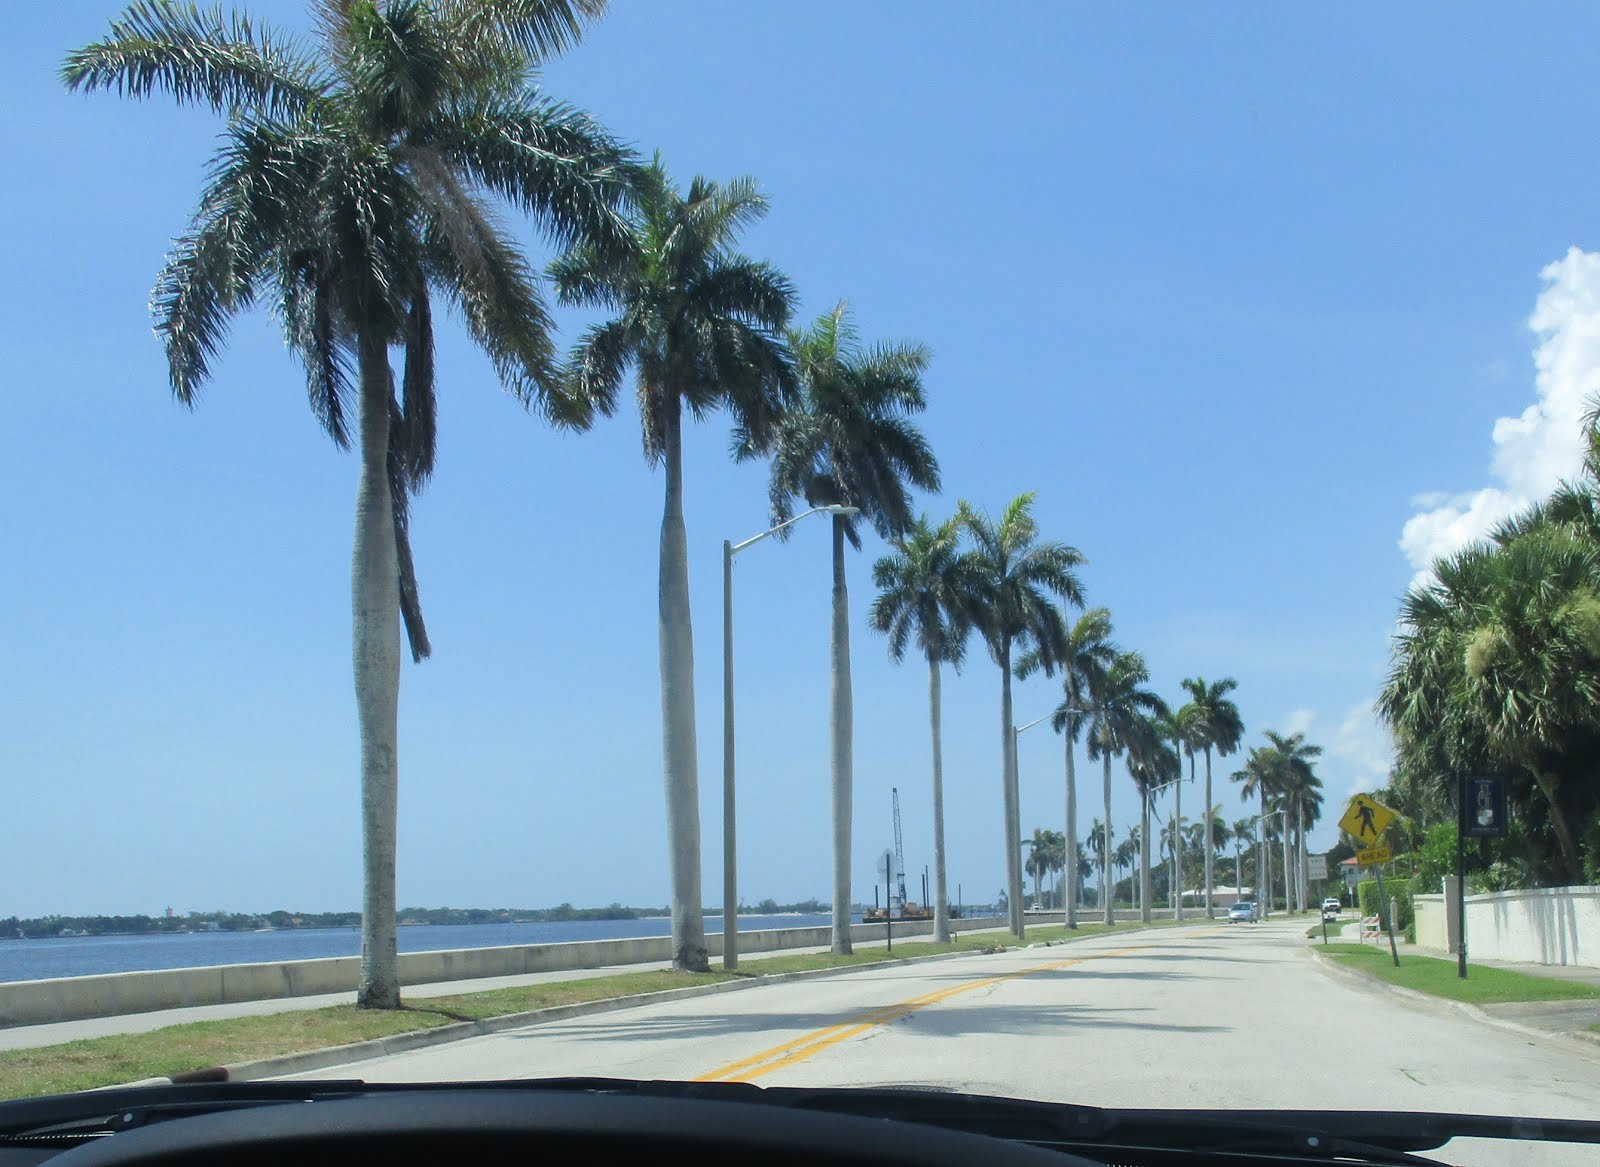 WEST PALM BEACH FLORIDE